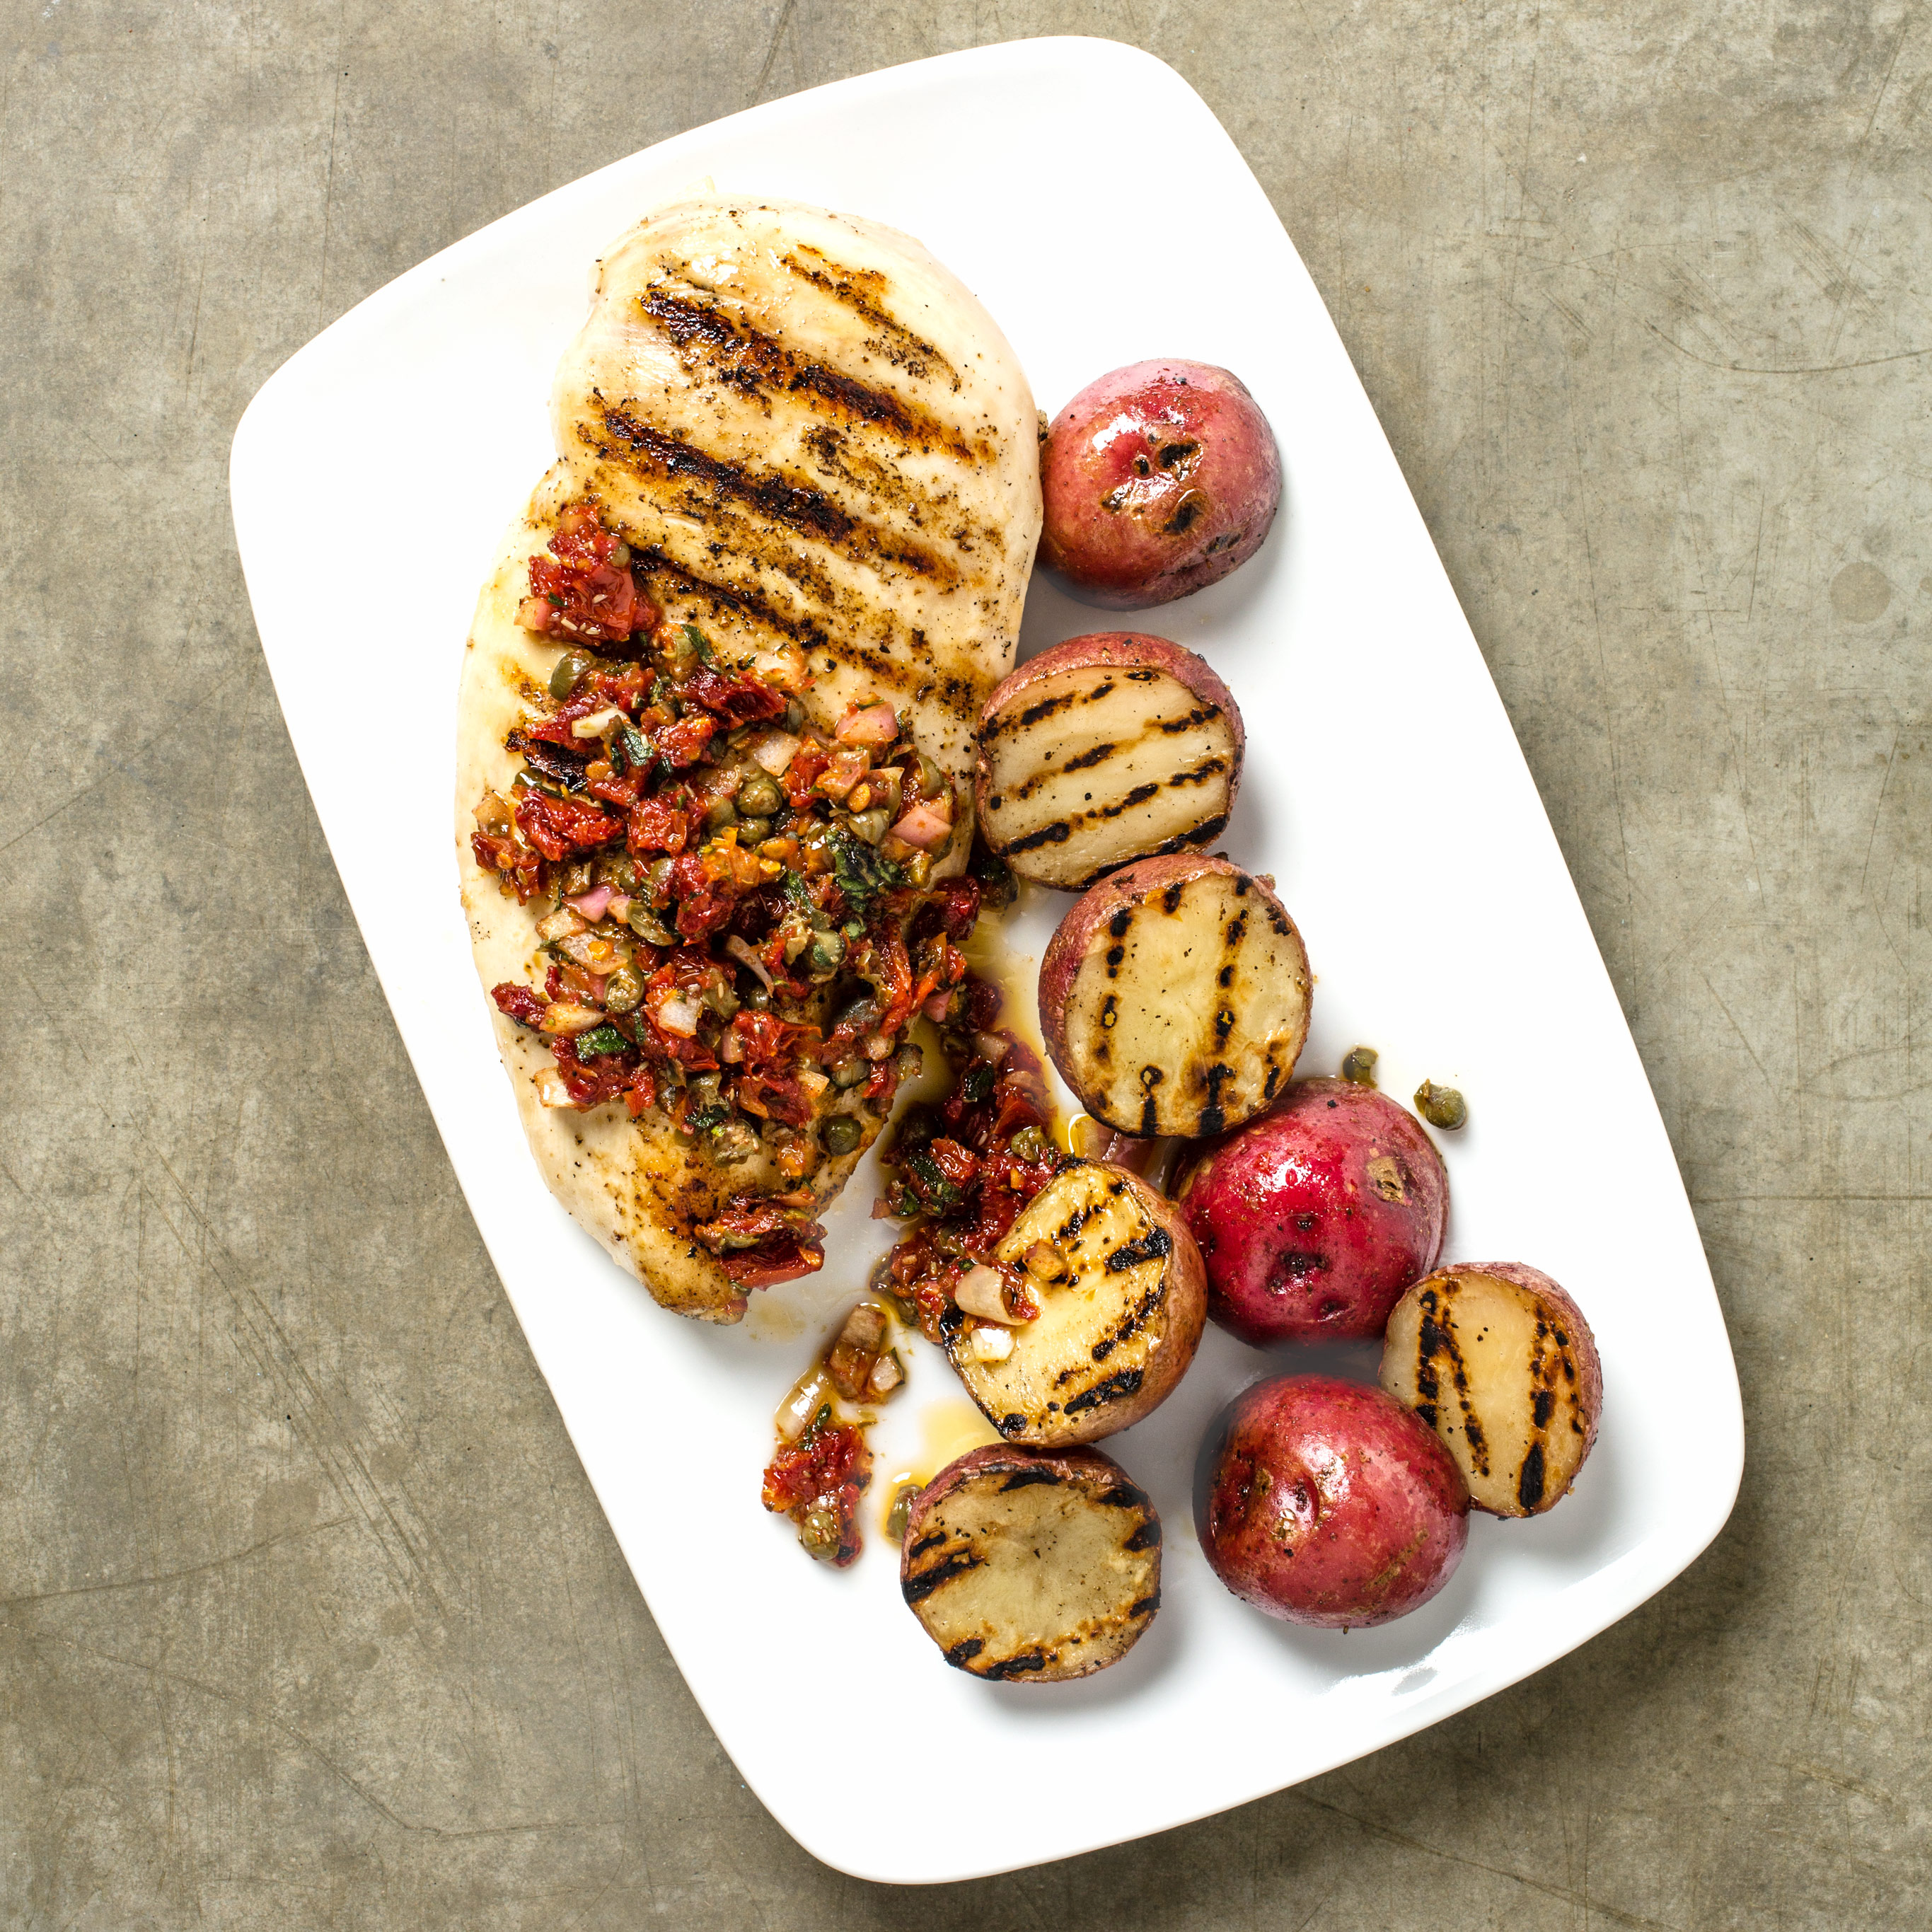 Grilled En And Potatoes With Sun Dried Tomato Relish